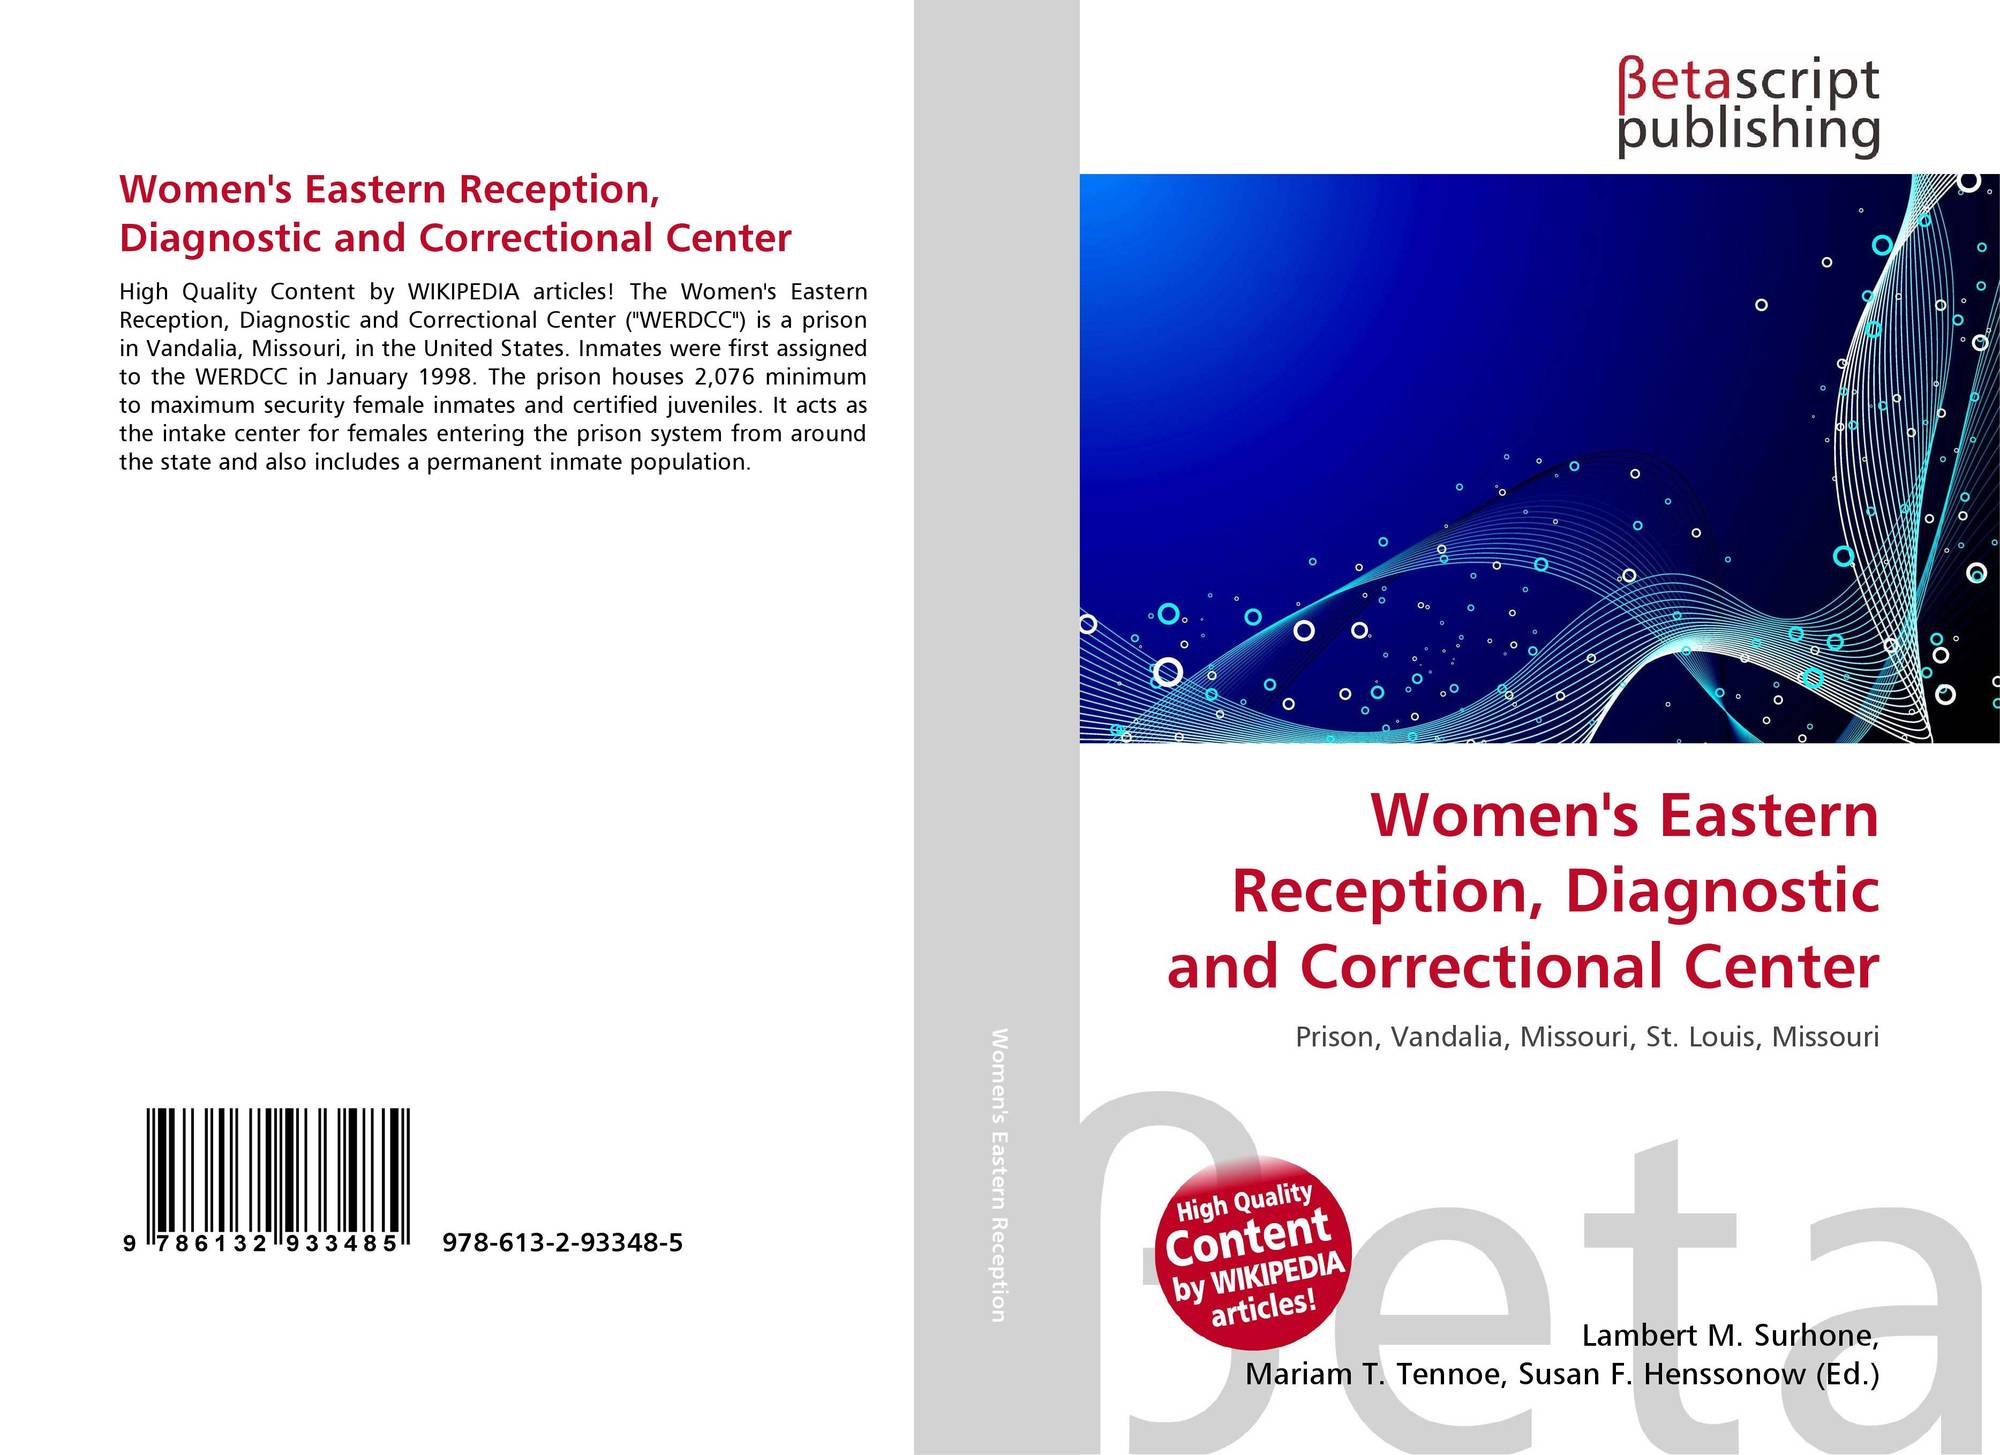 Women's Eastern Reception, Diagnostic and Correctional